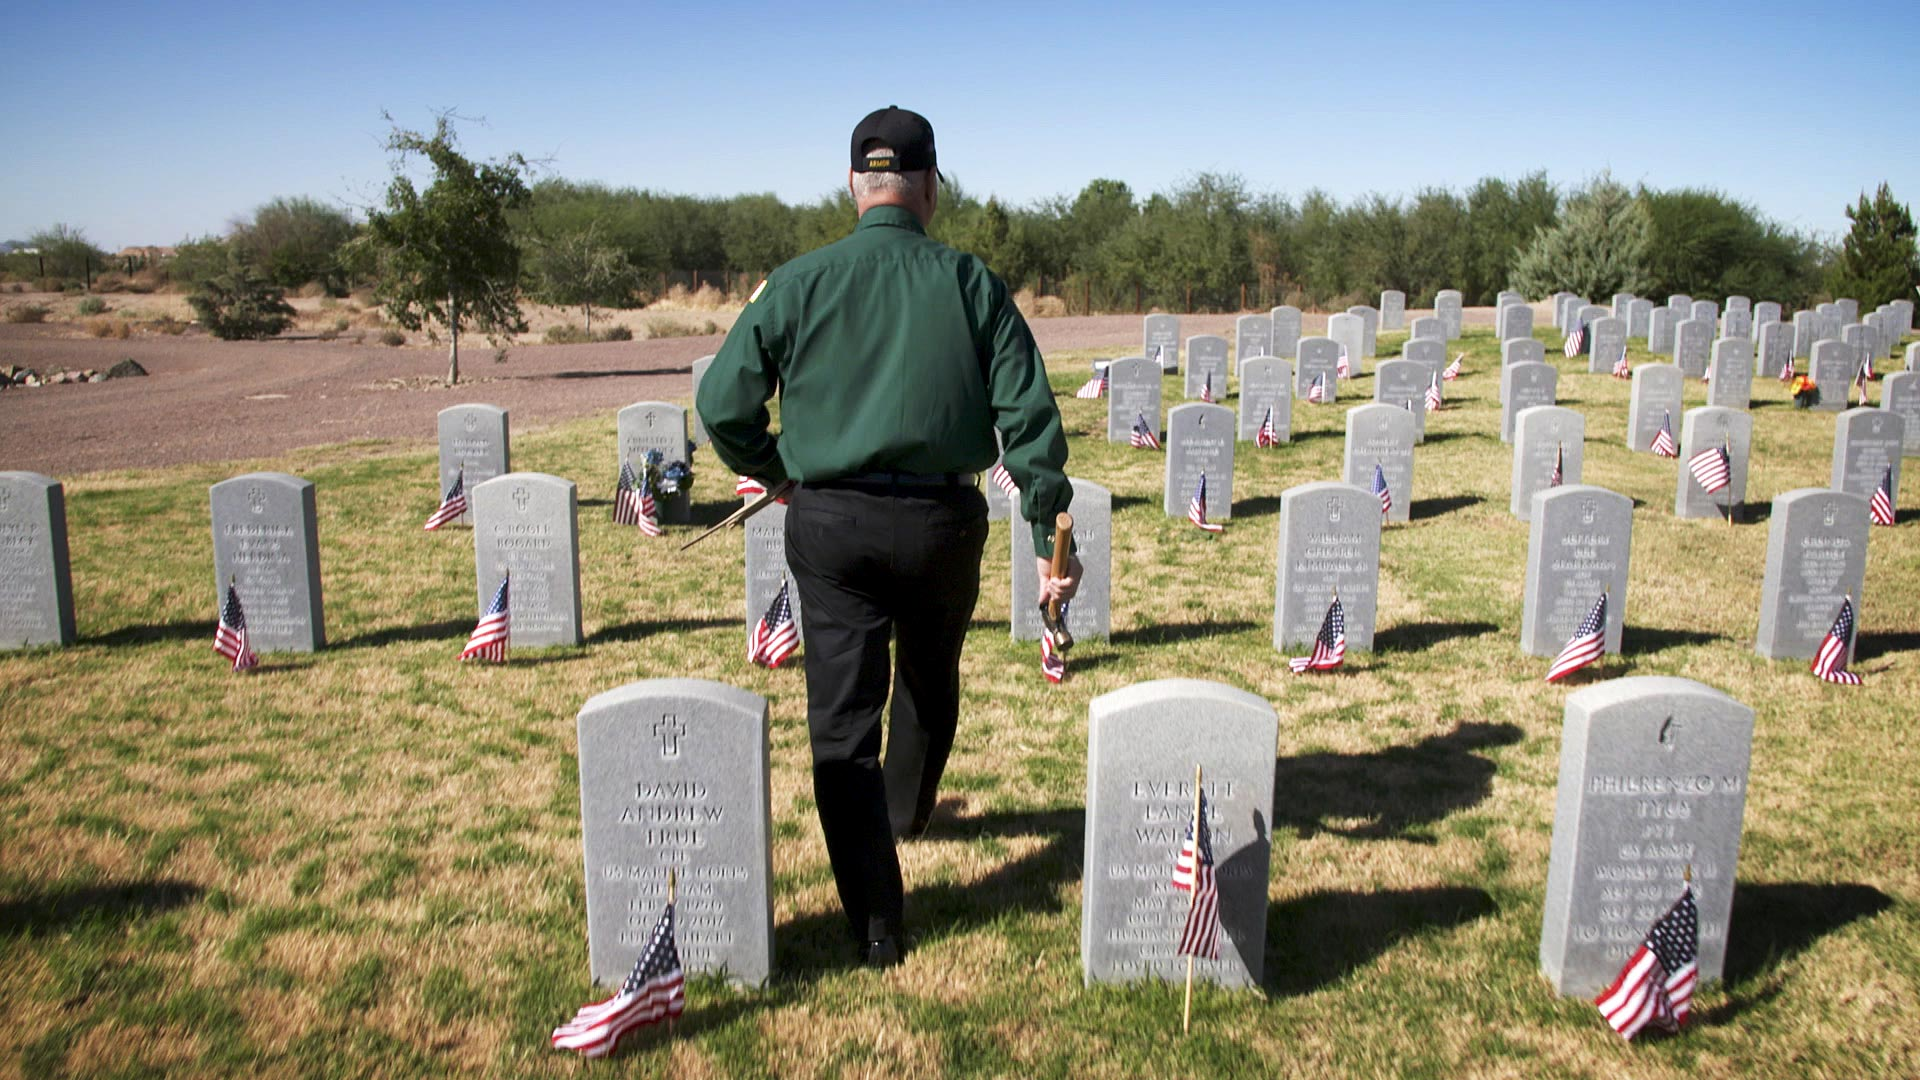 Retired Lt. Col. Ken Robinson walks through the Arizona Veterans' Memorial Cemetery at Marana where he planted flags at the graves of service members ahead of Veterans Day on Nov. 10, 2020.